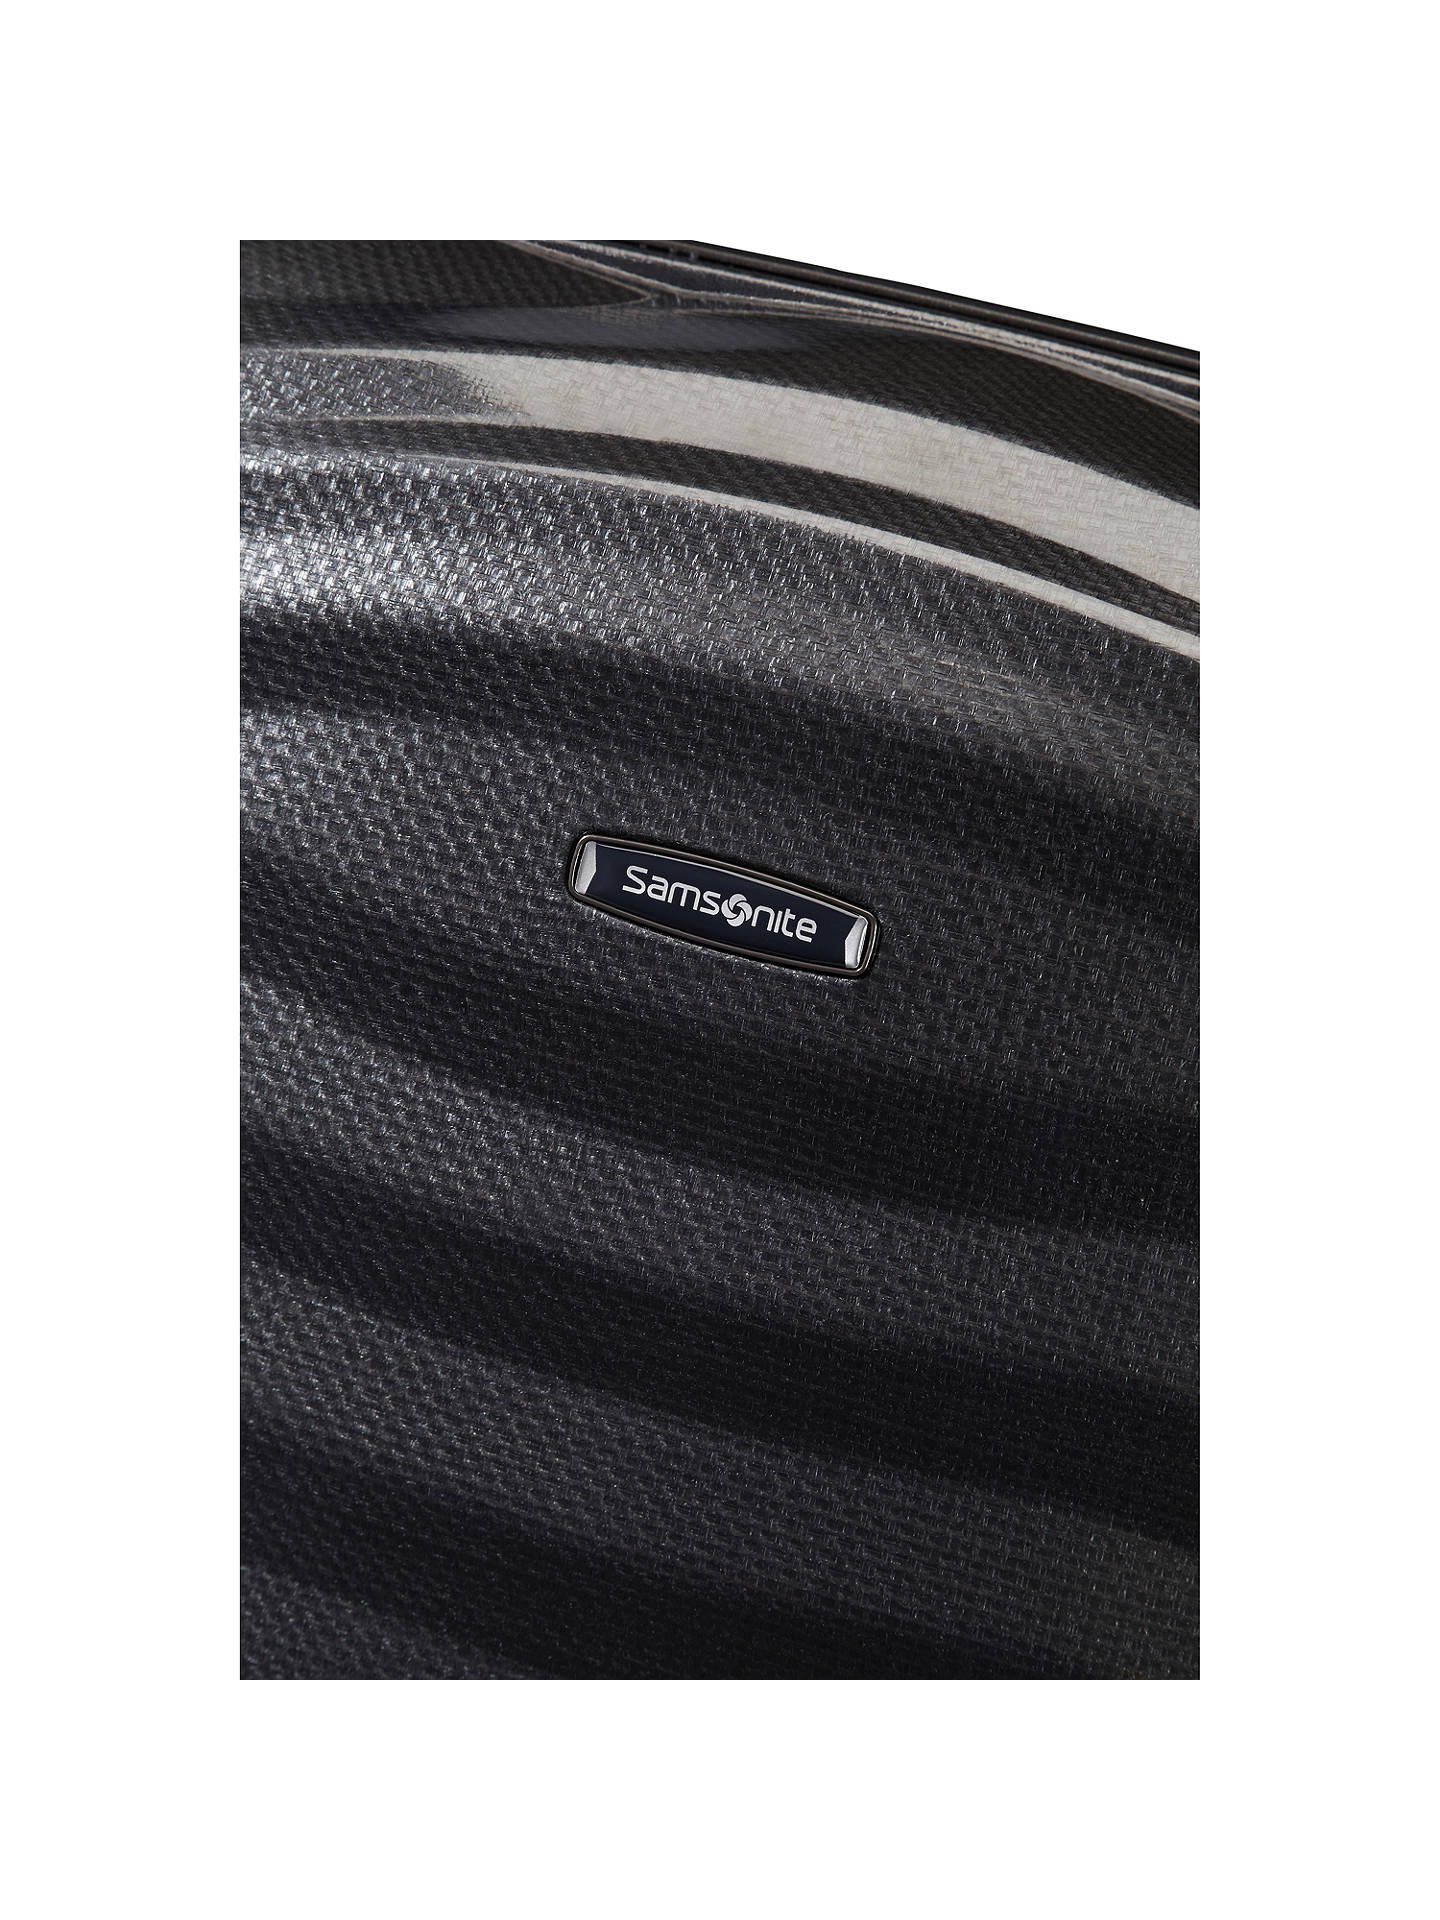 BuySamsonite Lite-Shock Spinner 4-Wheel 82cm Suitcase, Black Online at johnlewis.com